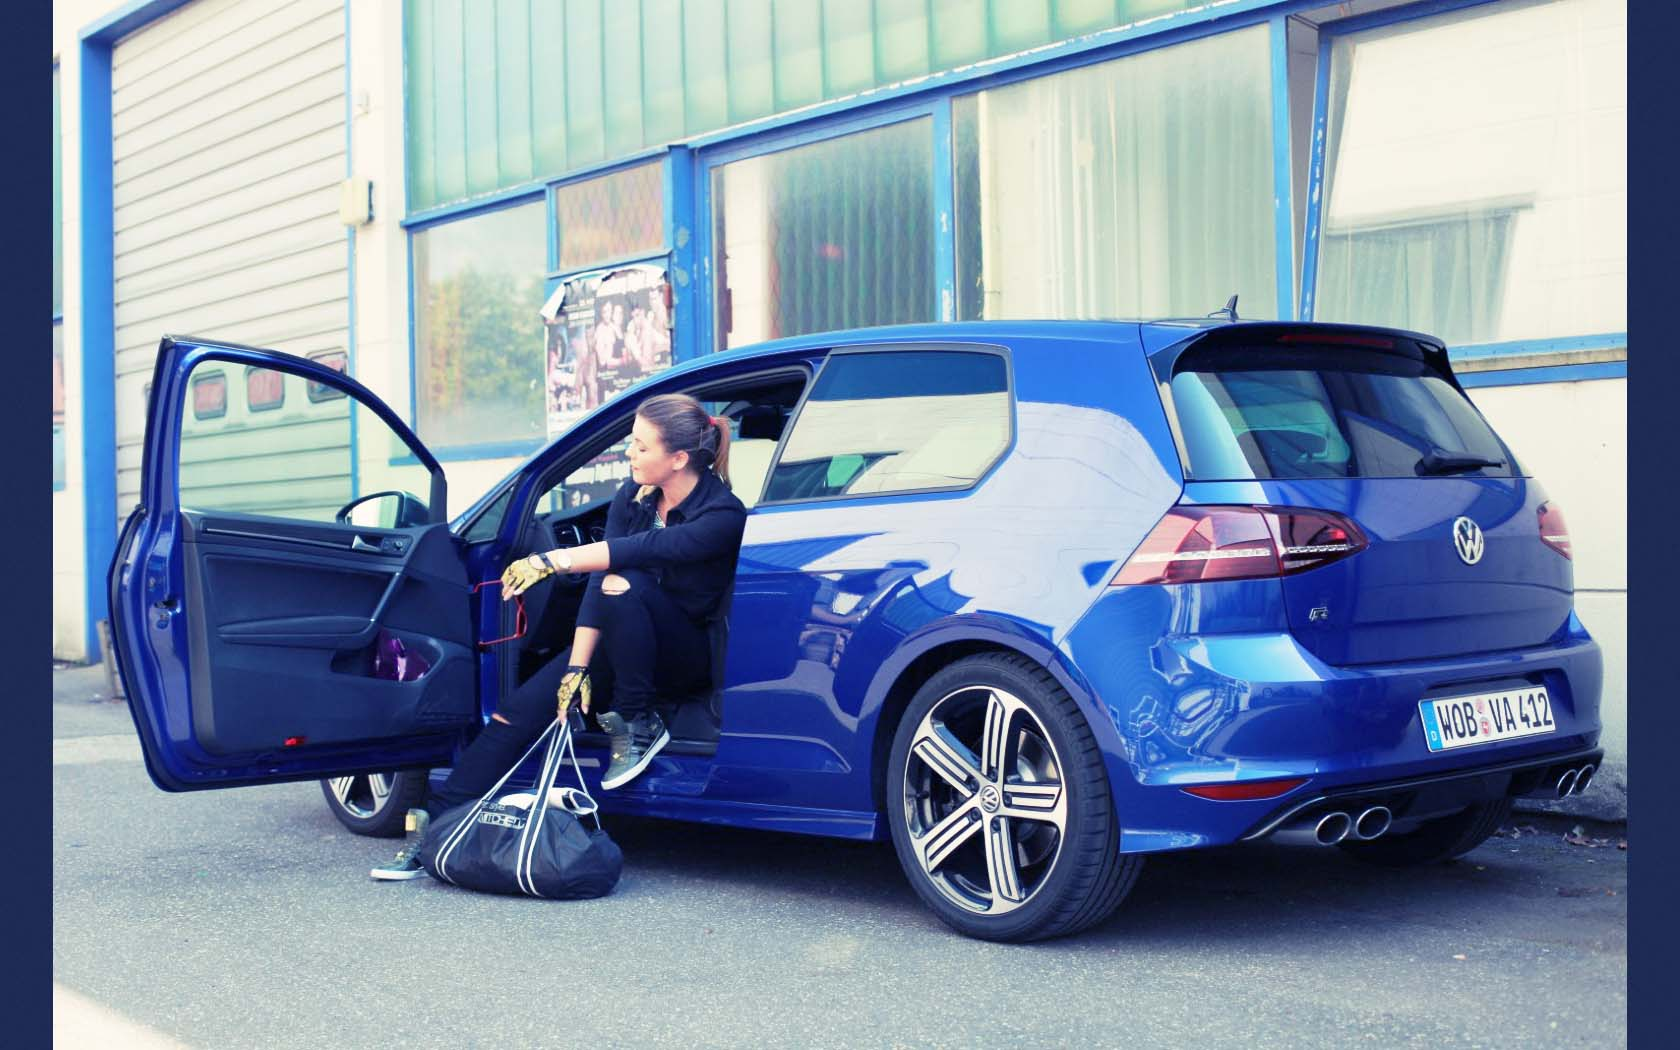 vw golf 7 r 2014 blue blau volkswagen 15 bemoreimpulsee. Black Bedroom Furniture Sets. Home Design Ideas